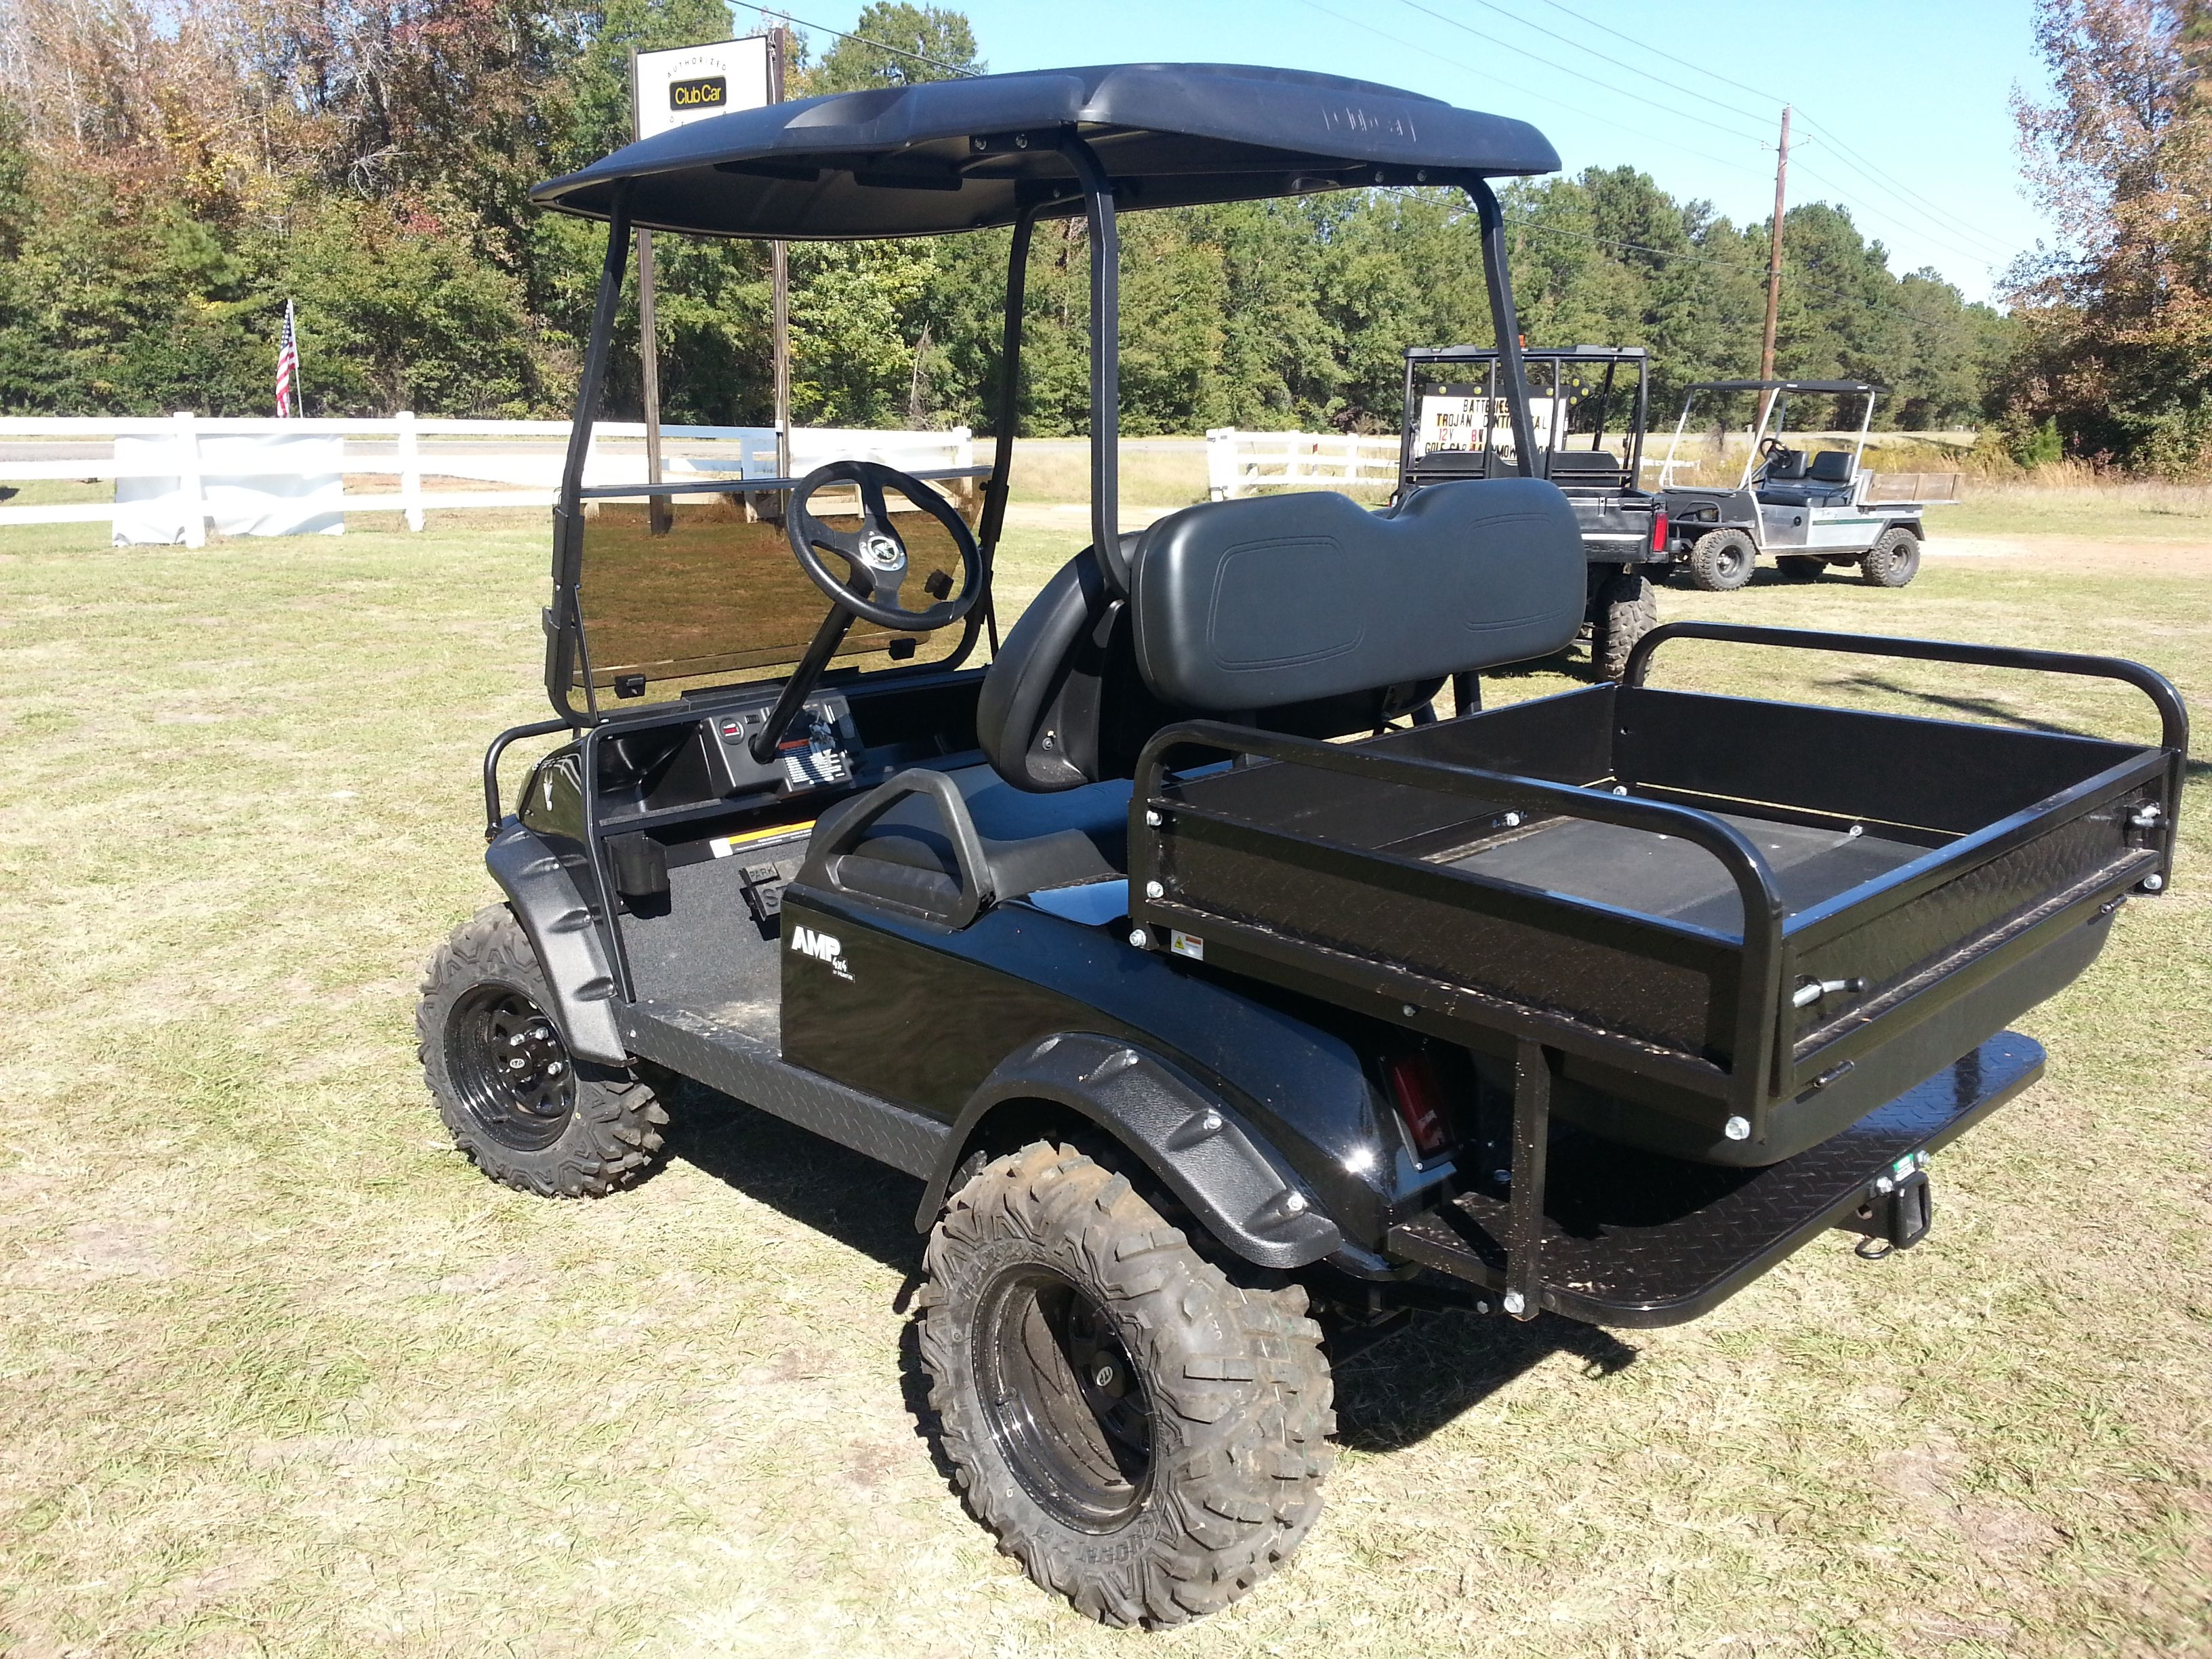 Huntve Amp 4 X All Electric Vehicle Is Designed With The Best Technology Available And Built To Last